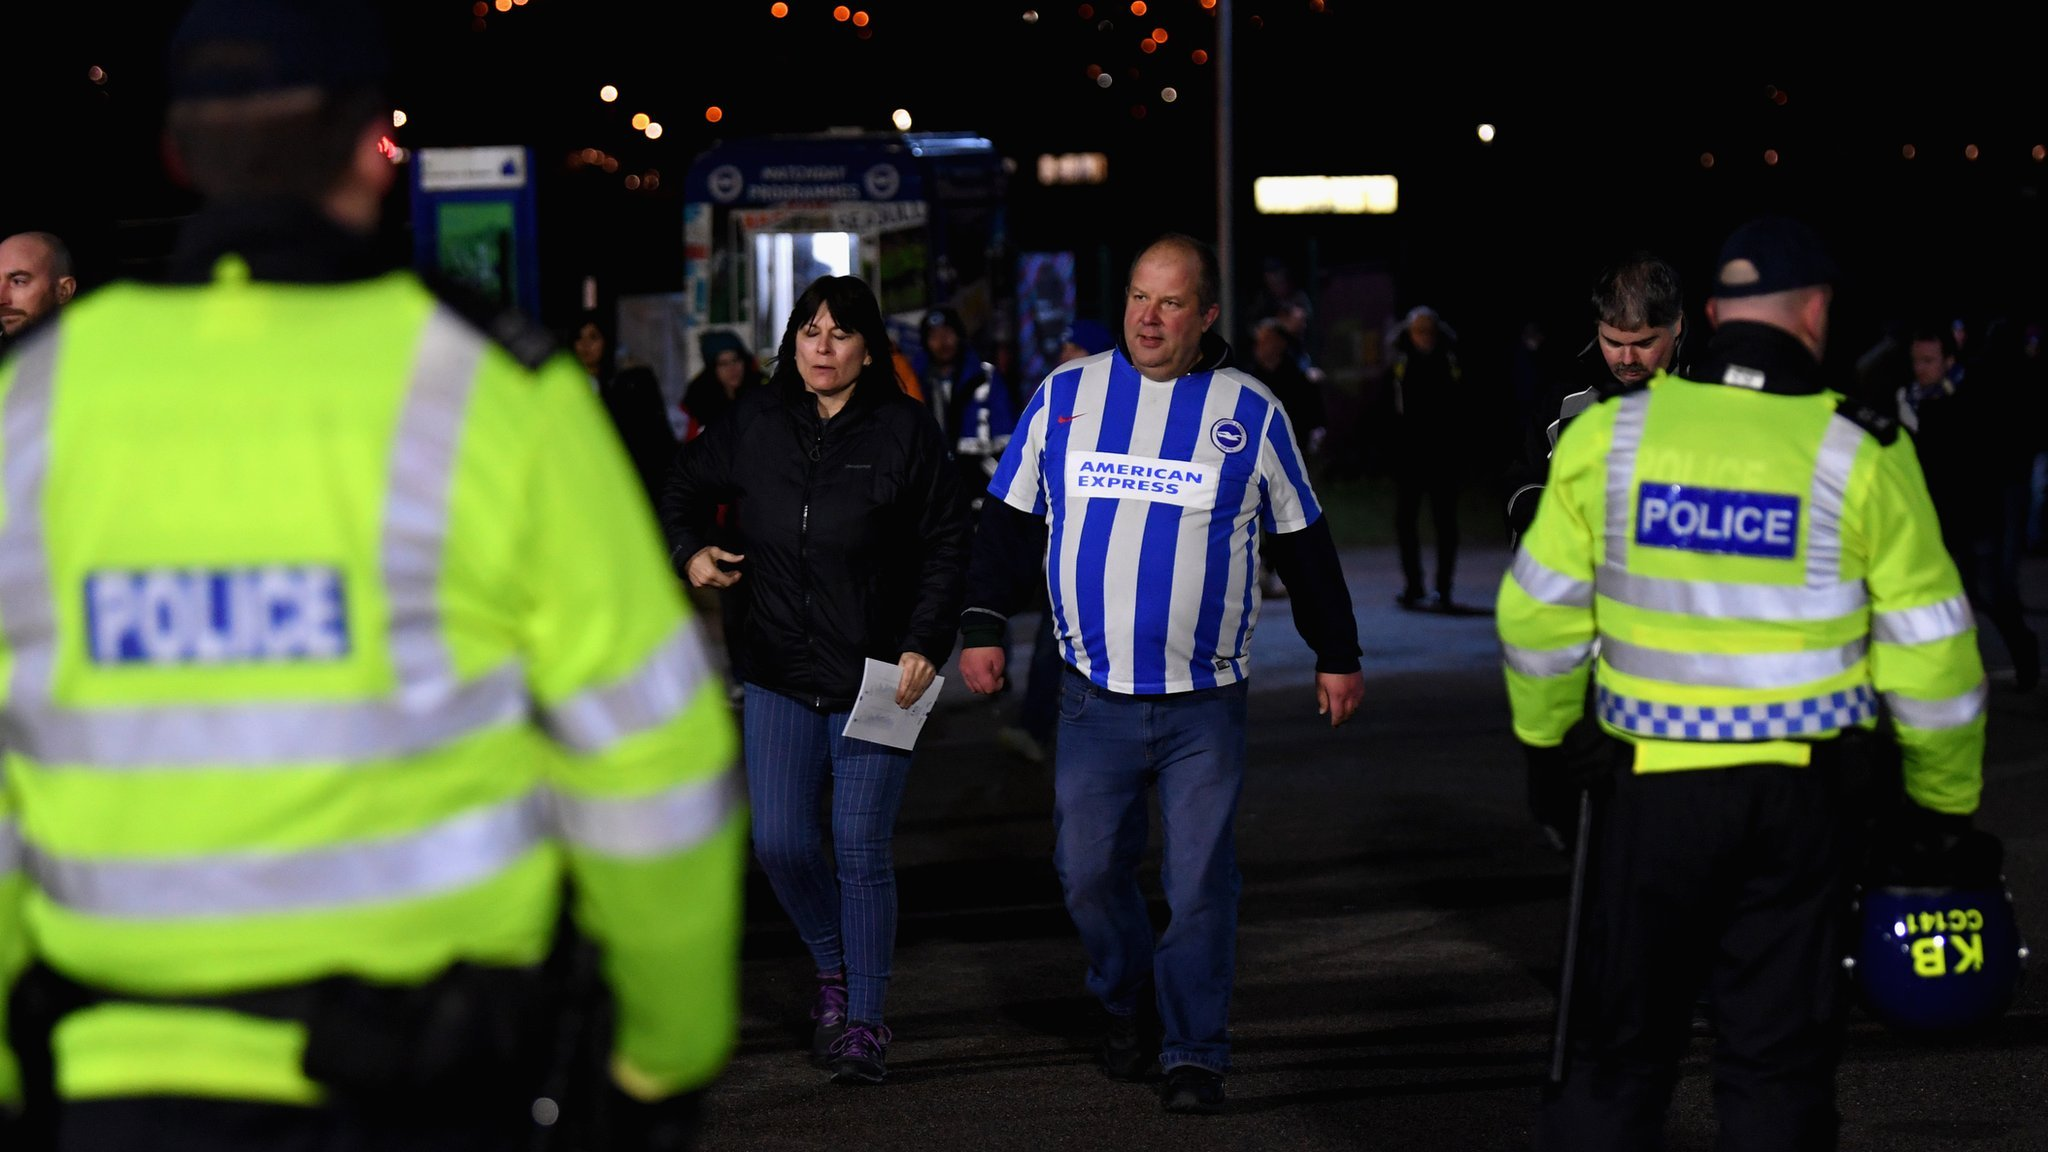 Police apologise for 'incorrect' weapons claim after Brighton v Palace